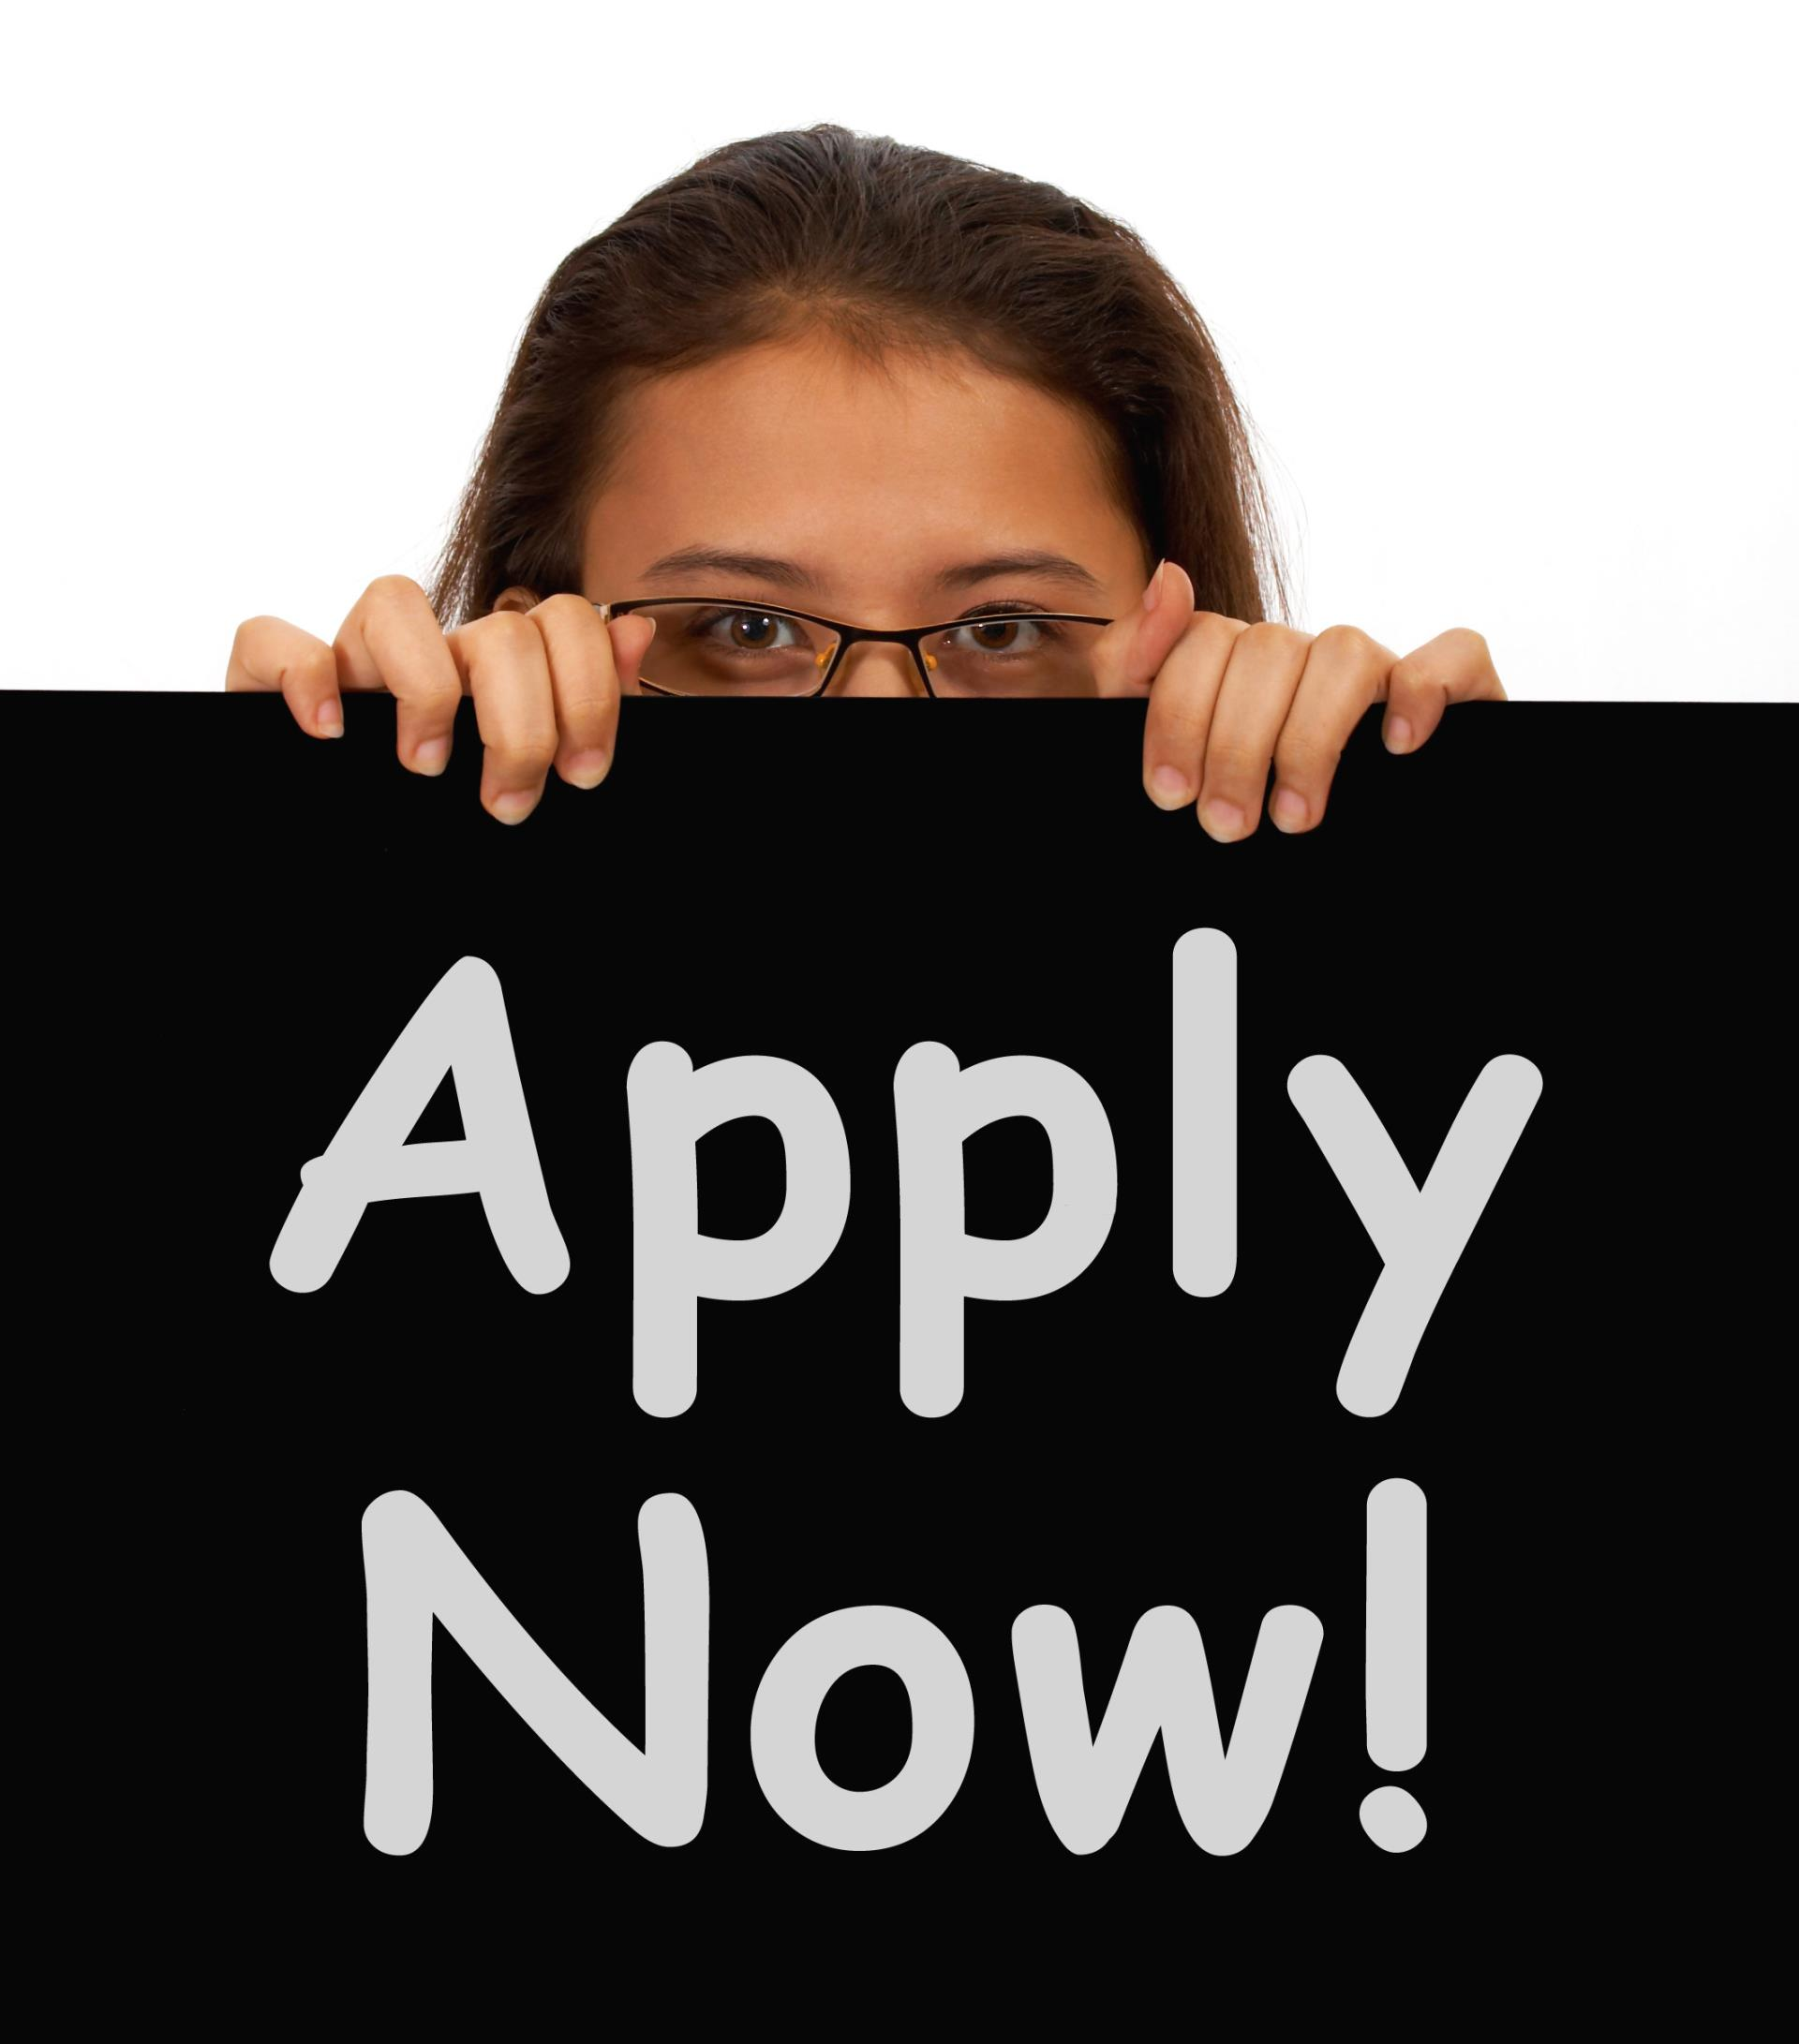 apply-now-sign-for-work-application_MksKerDu